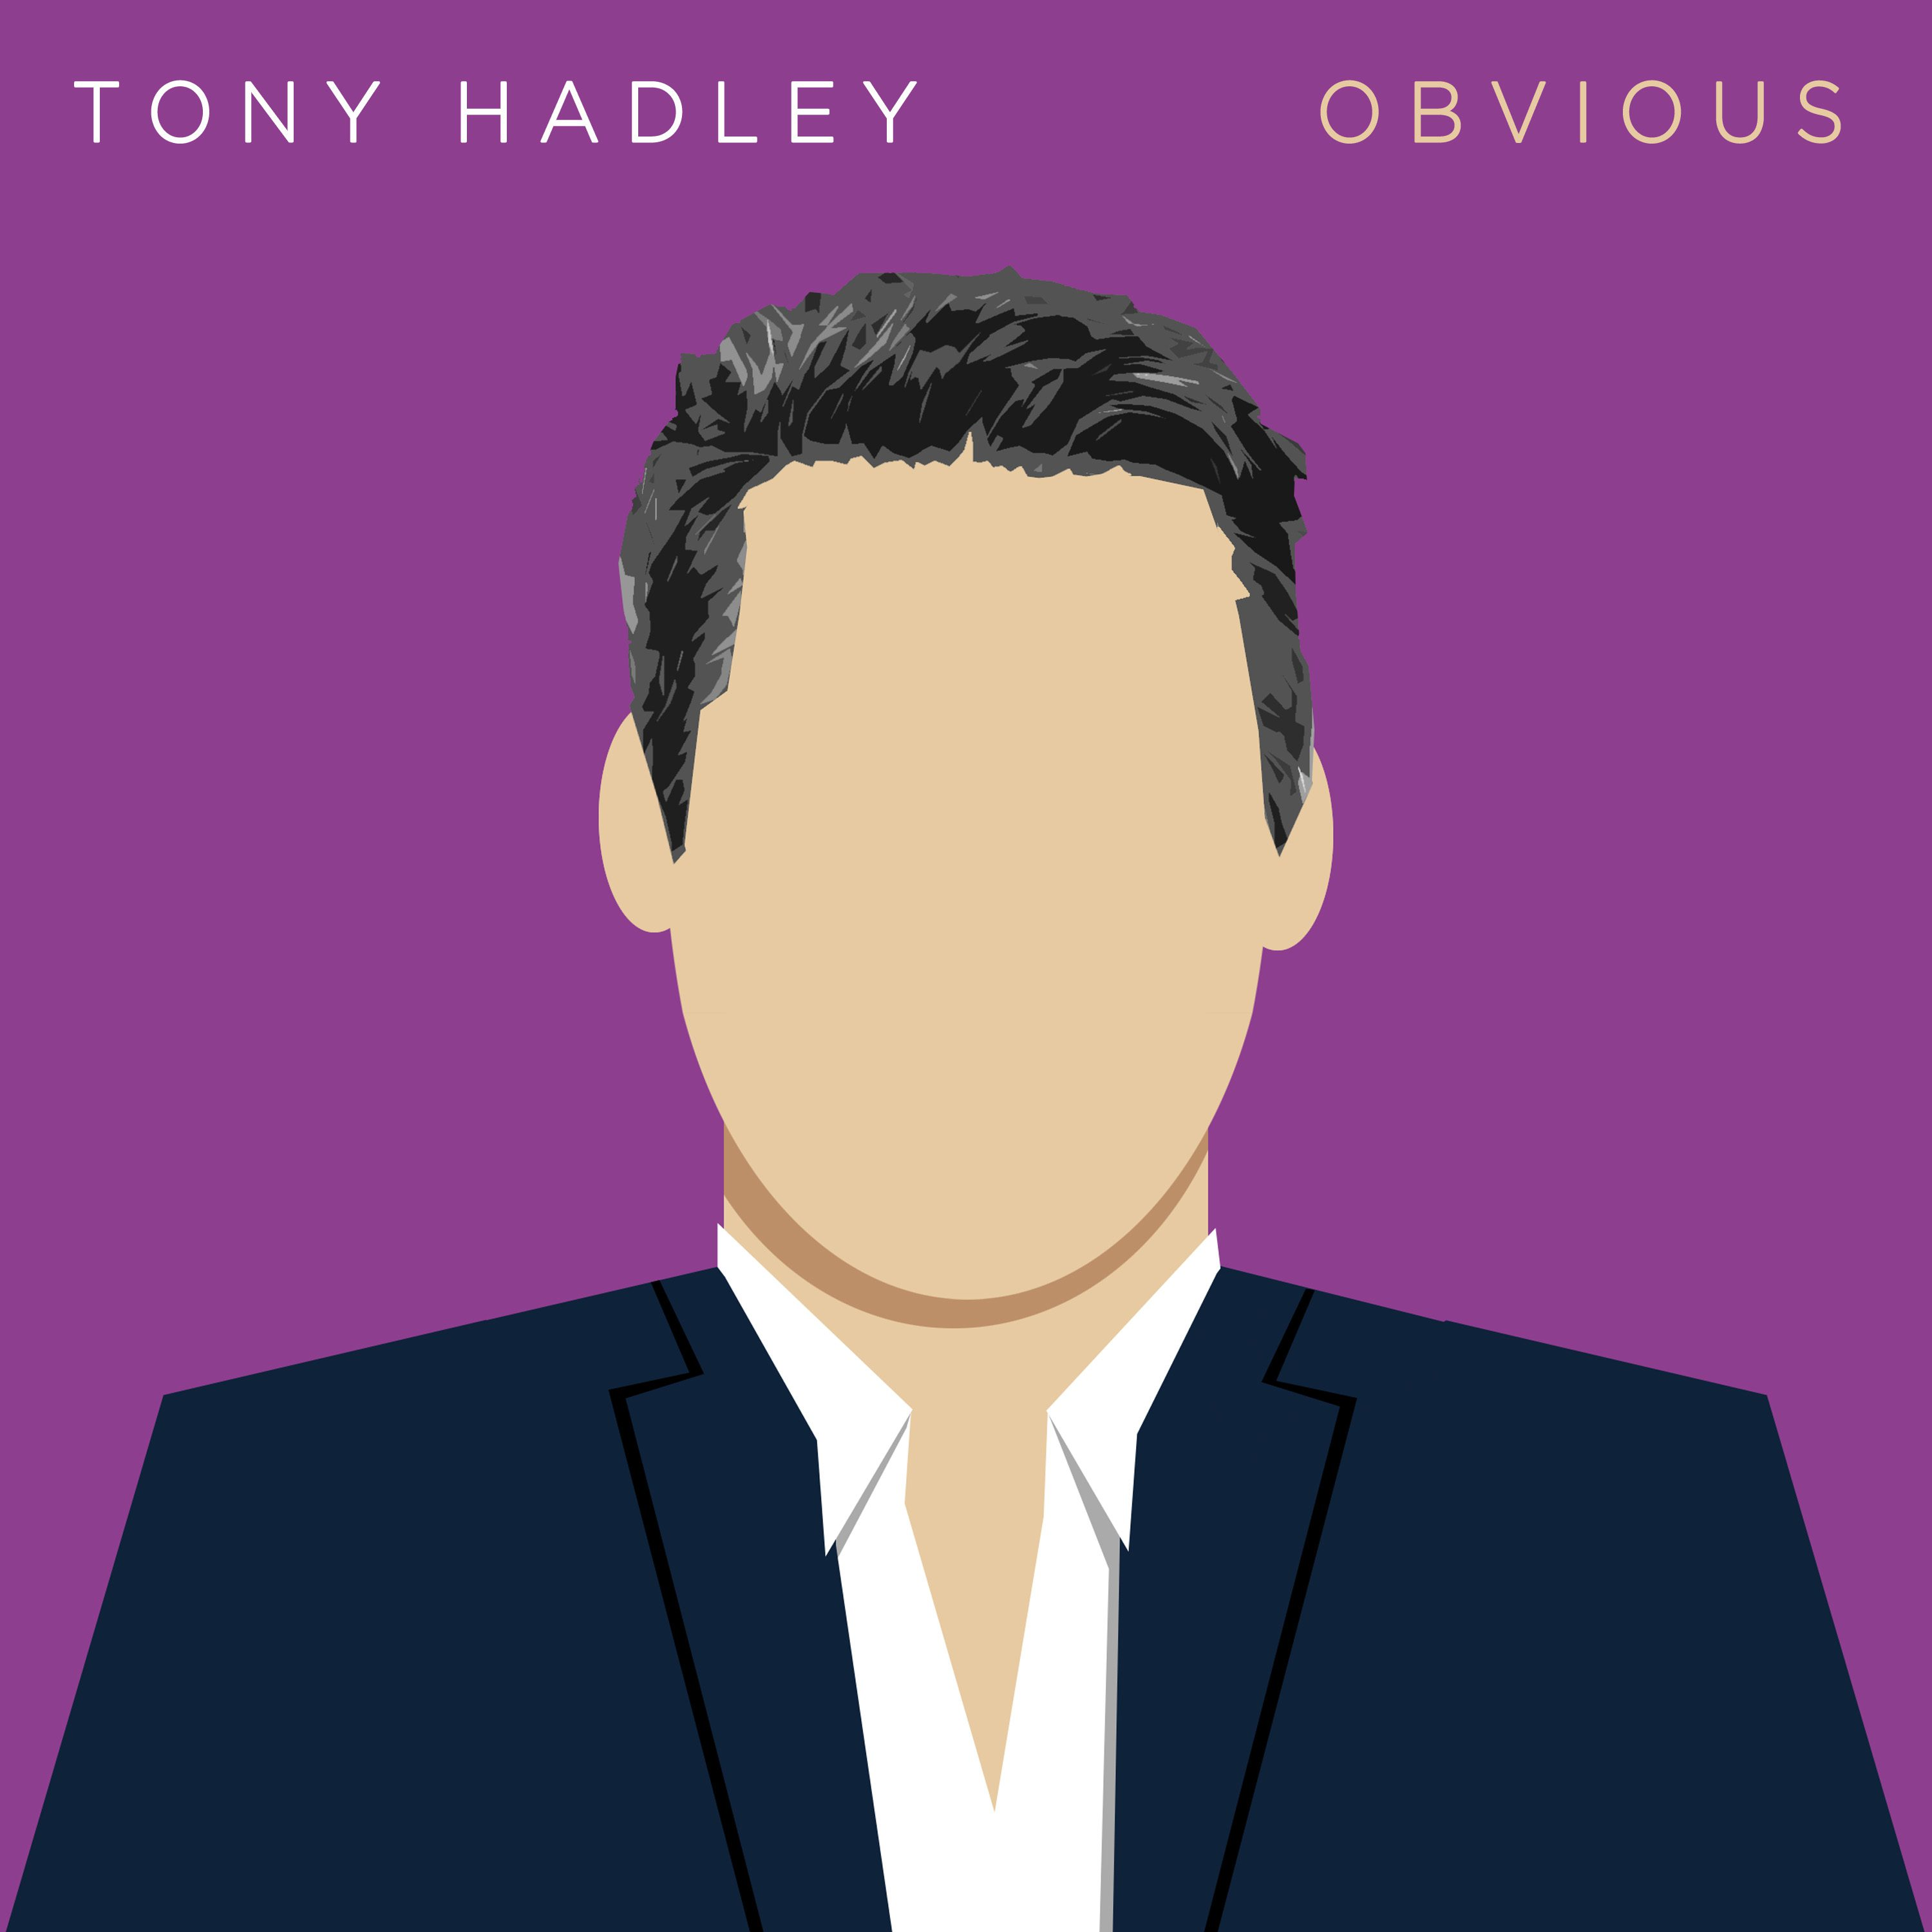 Obvious - Tony Hadley